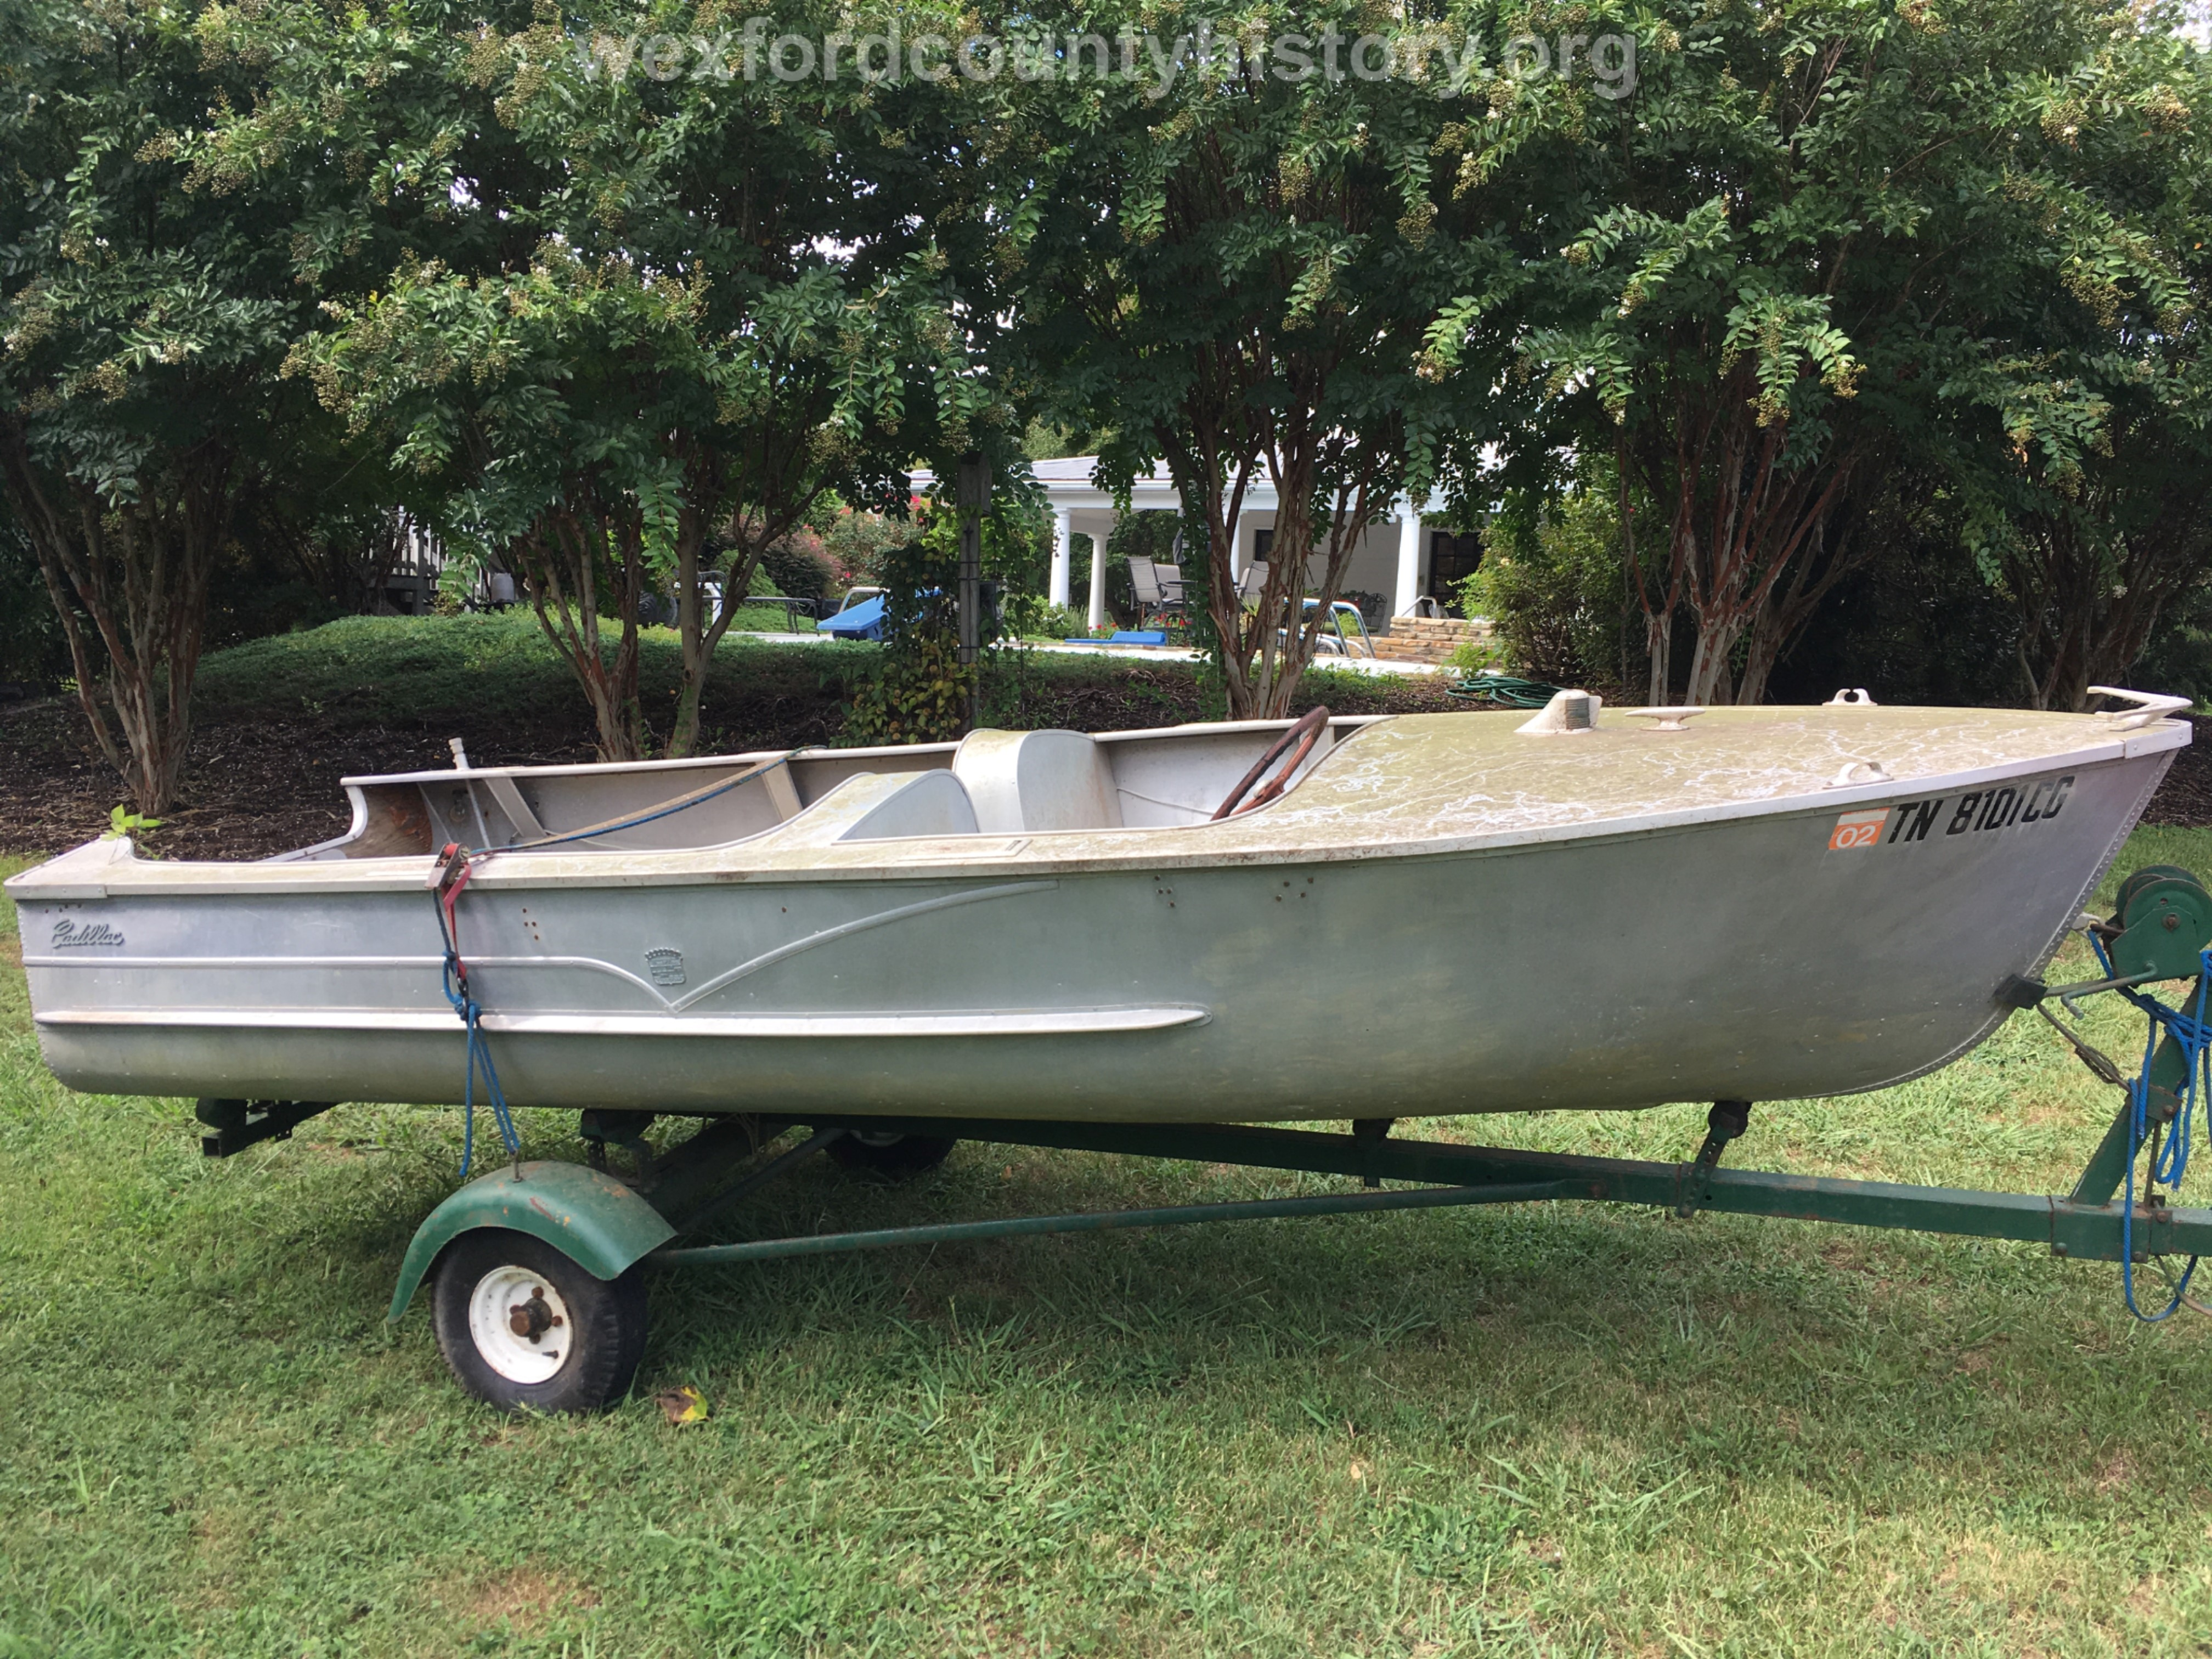 Cadillac-Objects-Cadillac-Marine-And-Boat-Company-Custom-Made-Boat-owned-by-Dave-Sakich-2